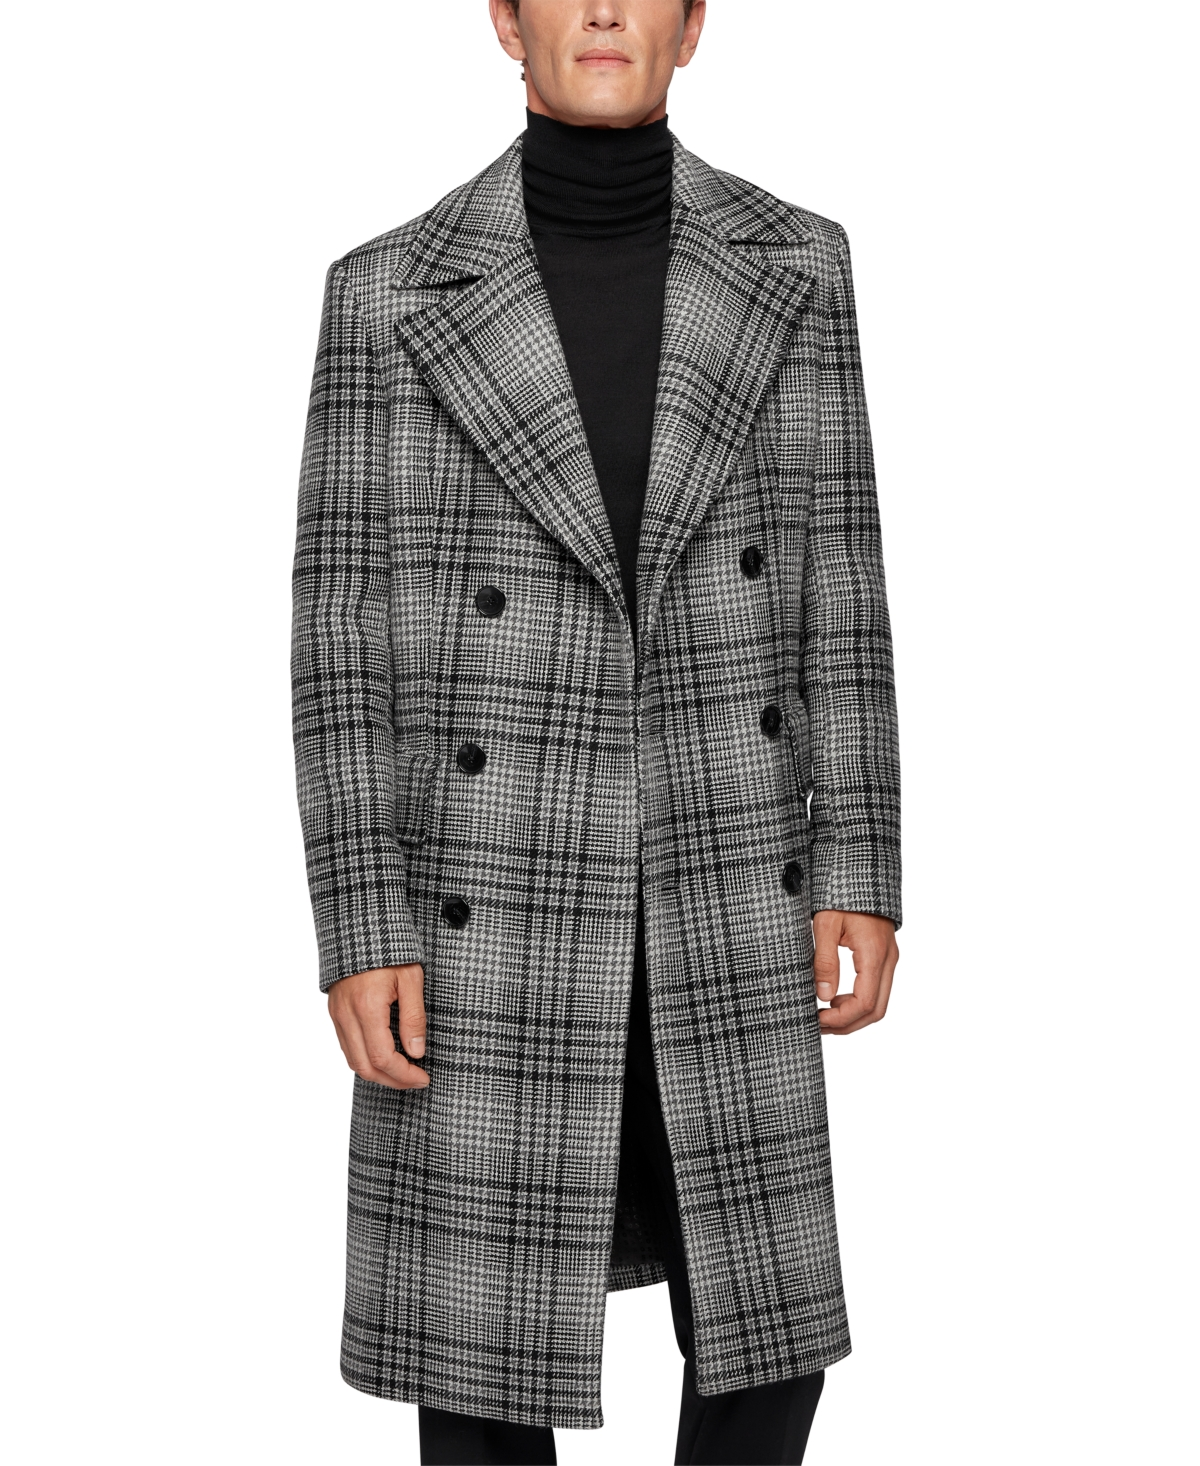 1920s Men's Style Clothing Boss Mens Wool Double-Breasted Coat $795.00 AT vintagedancer.com